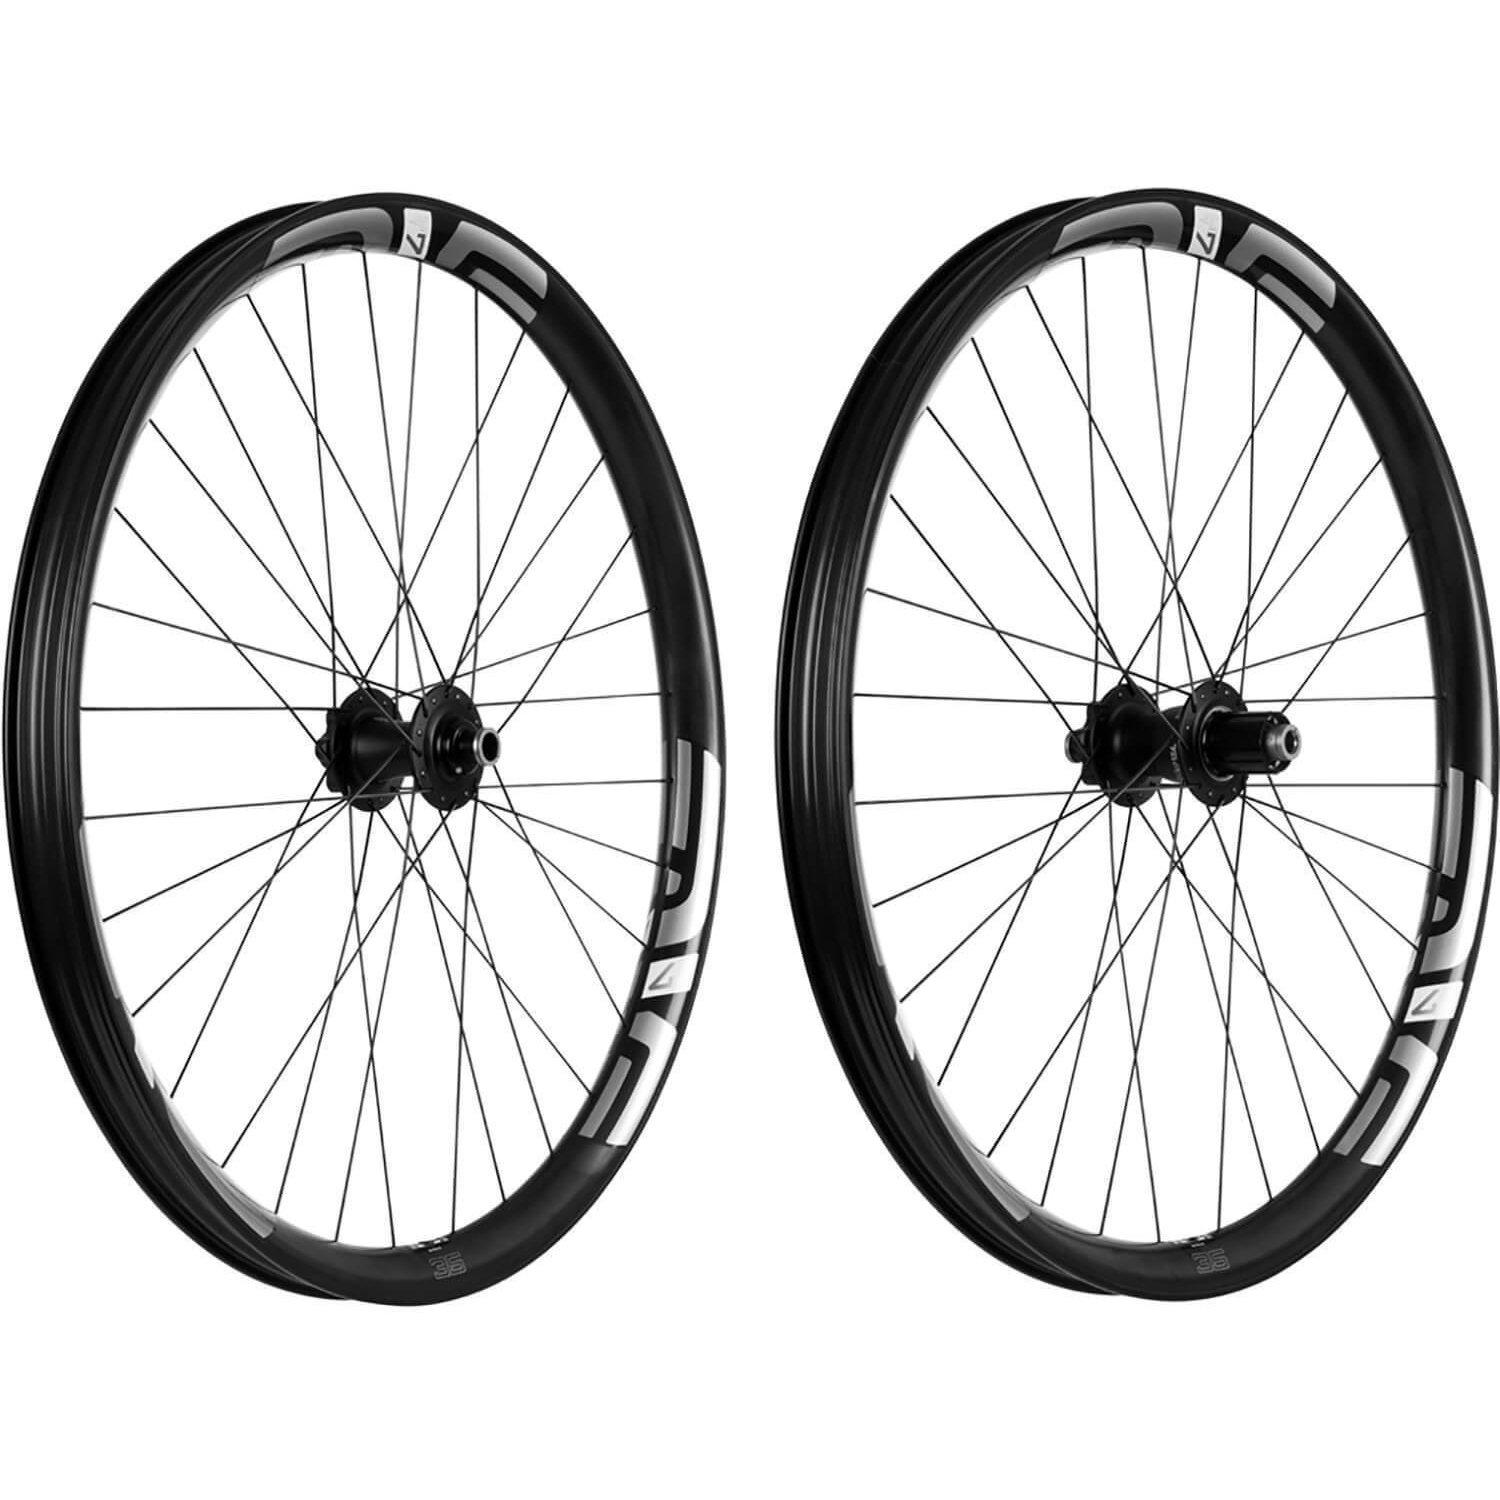 ENVE-ENVE M735E MTB Wheelset – Chris King Hubs-Black – Shimano-29-EN1327CK1002115025-saddleback-elite-performance-cycling